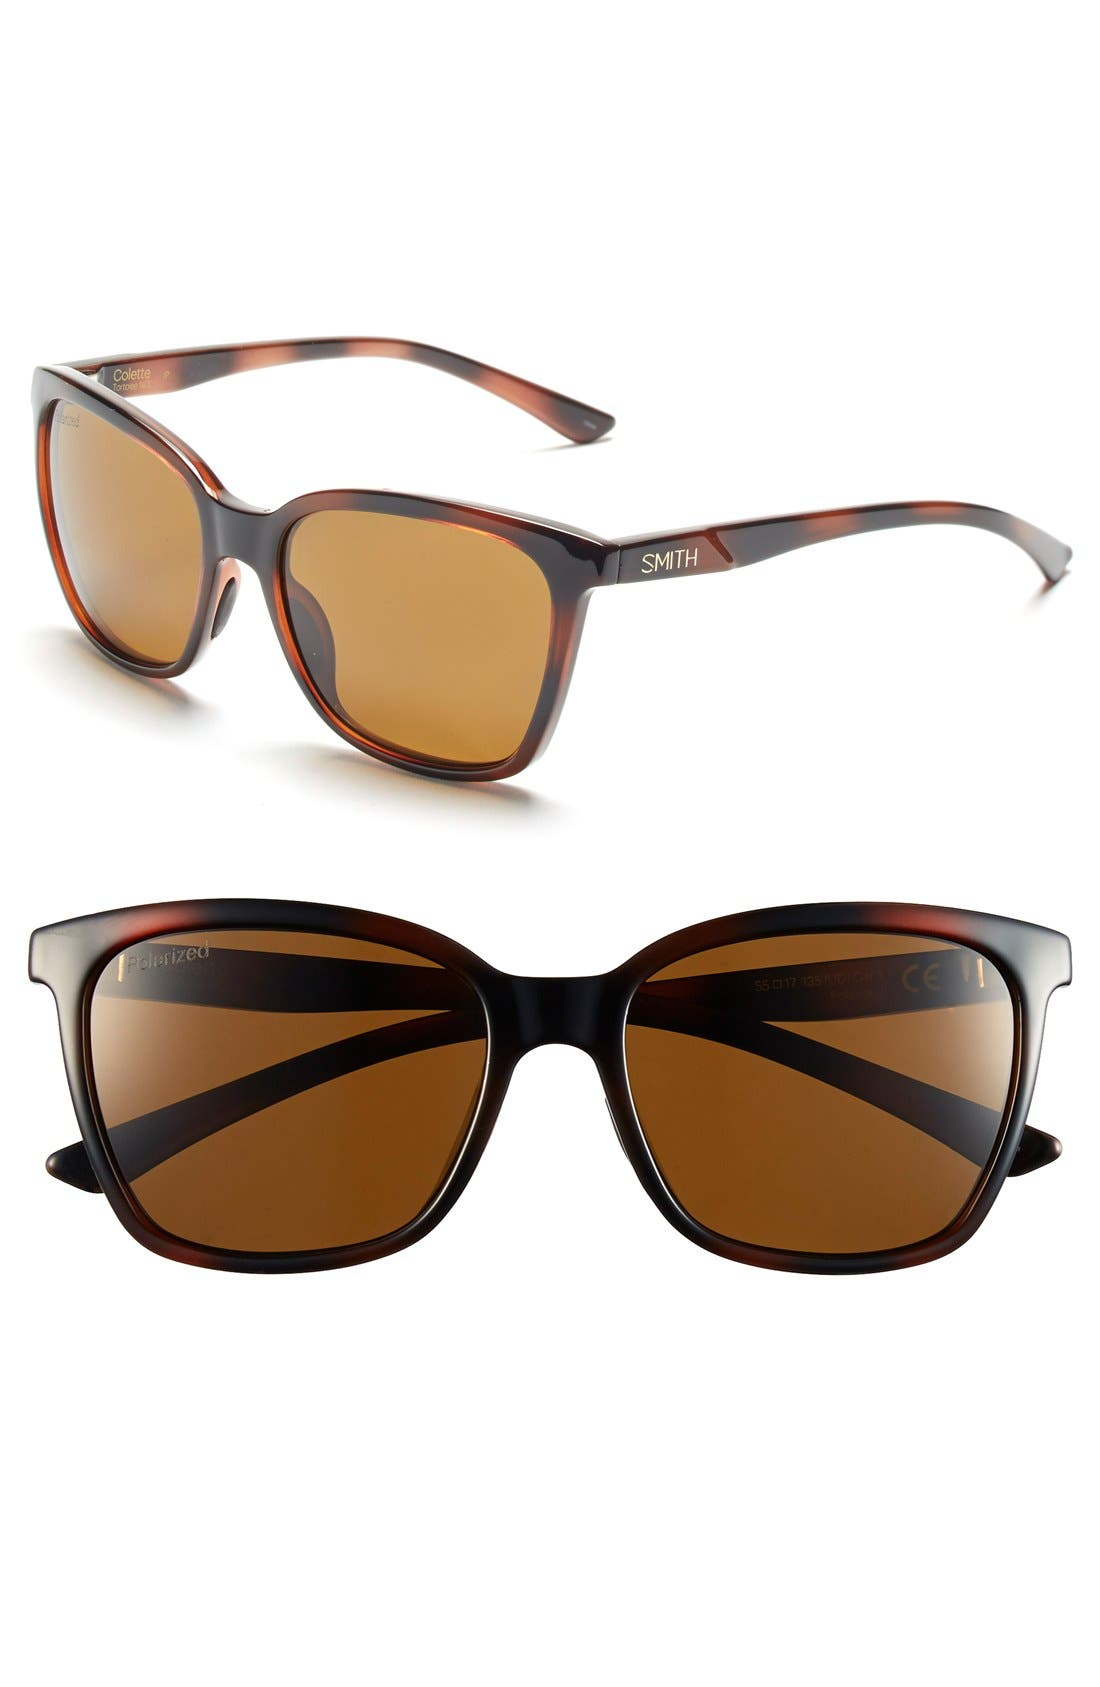 'Colette' 55mm Polarized Sunglasses,                             Main thumbnail 1, color,                             Tortoise/ Polar Brown